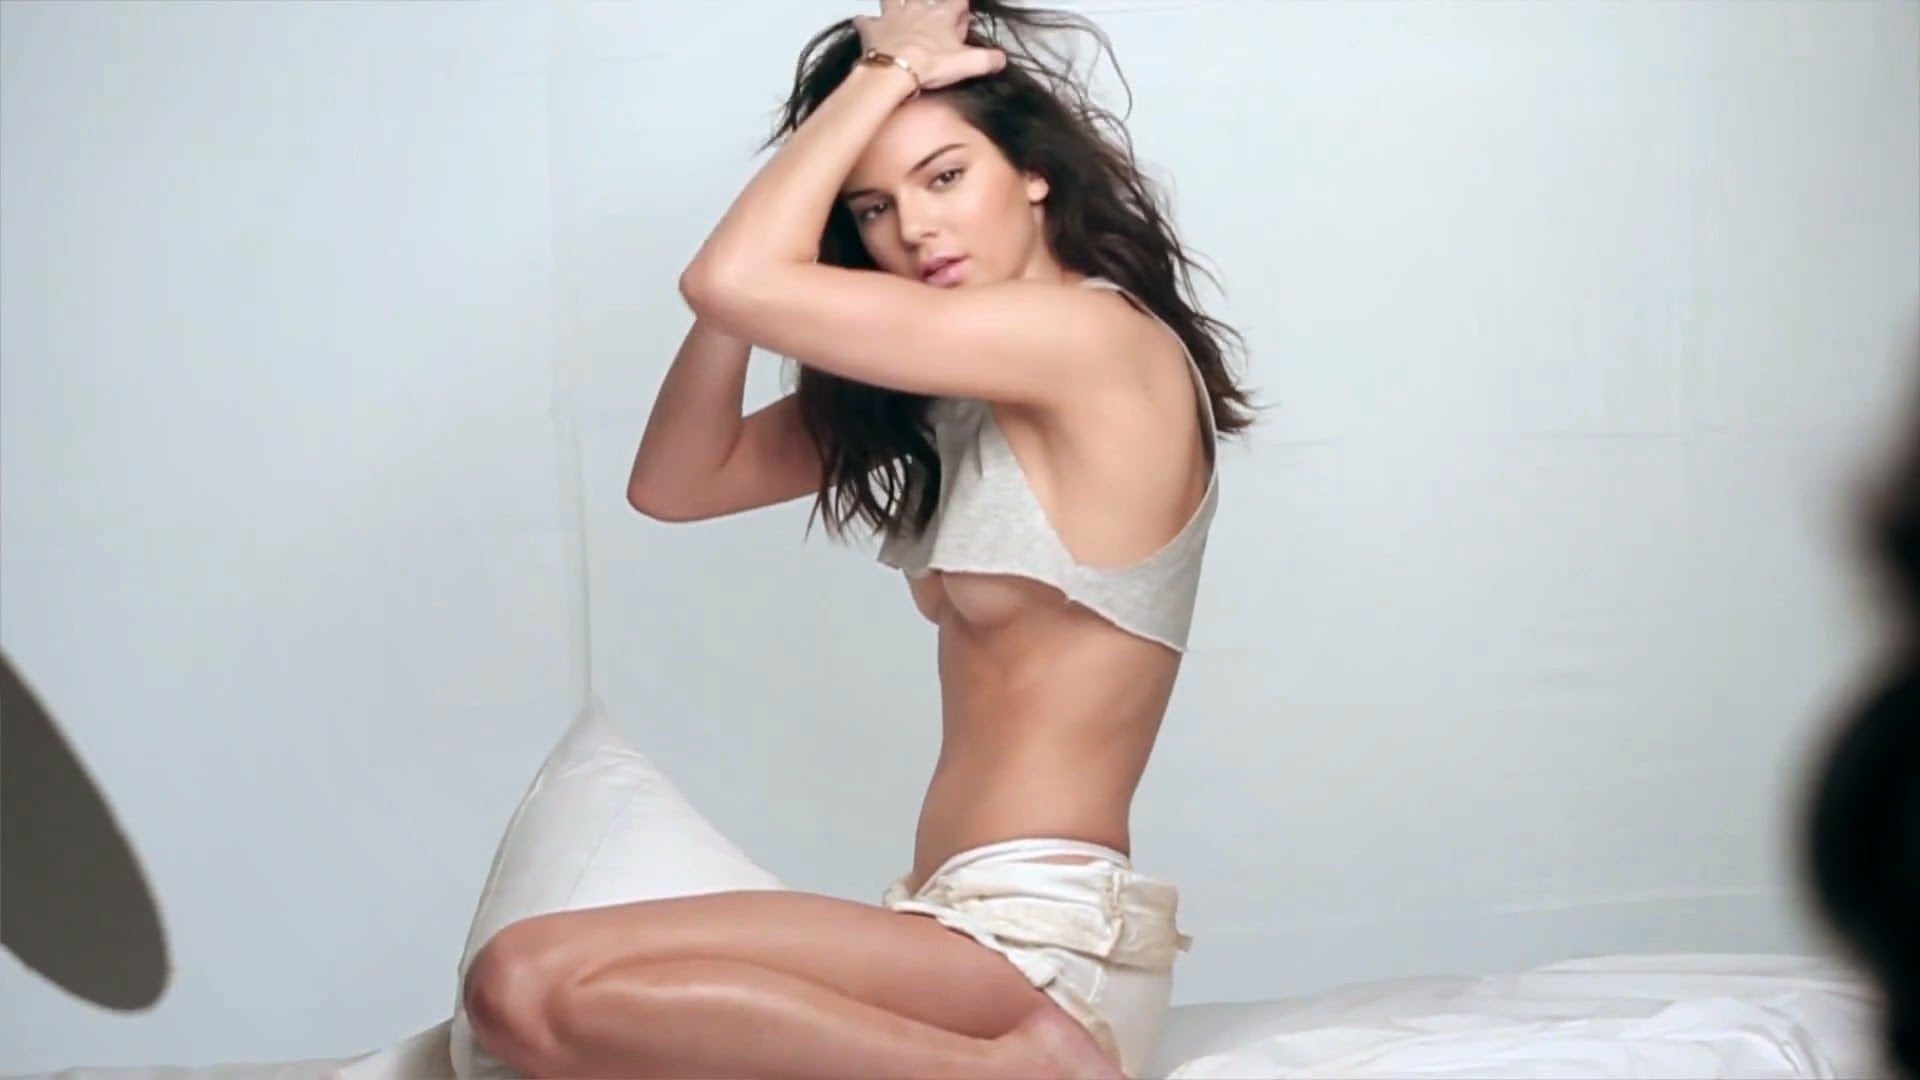 Kendall Jenner Sexy Pictures